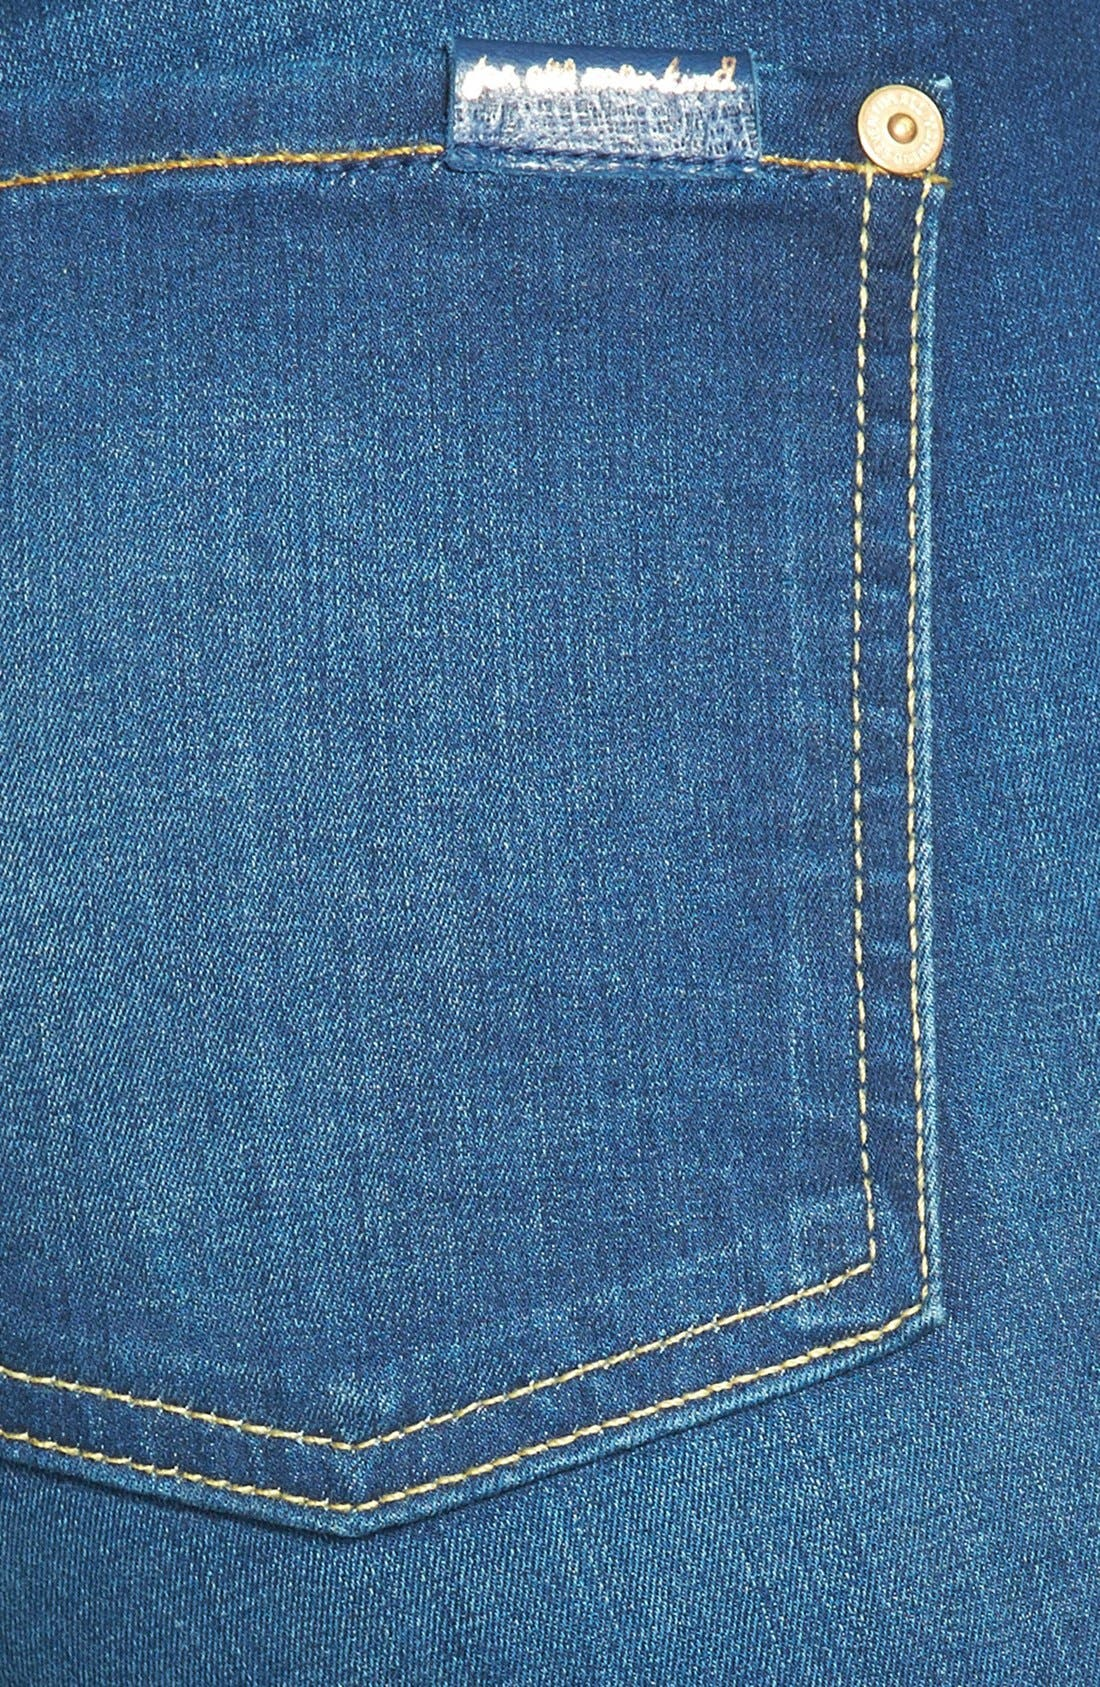 Alternate Image 3  - 7 For All Mankind® Mid Rise Crop Skinny Jeans (Bright Blue Sateen)